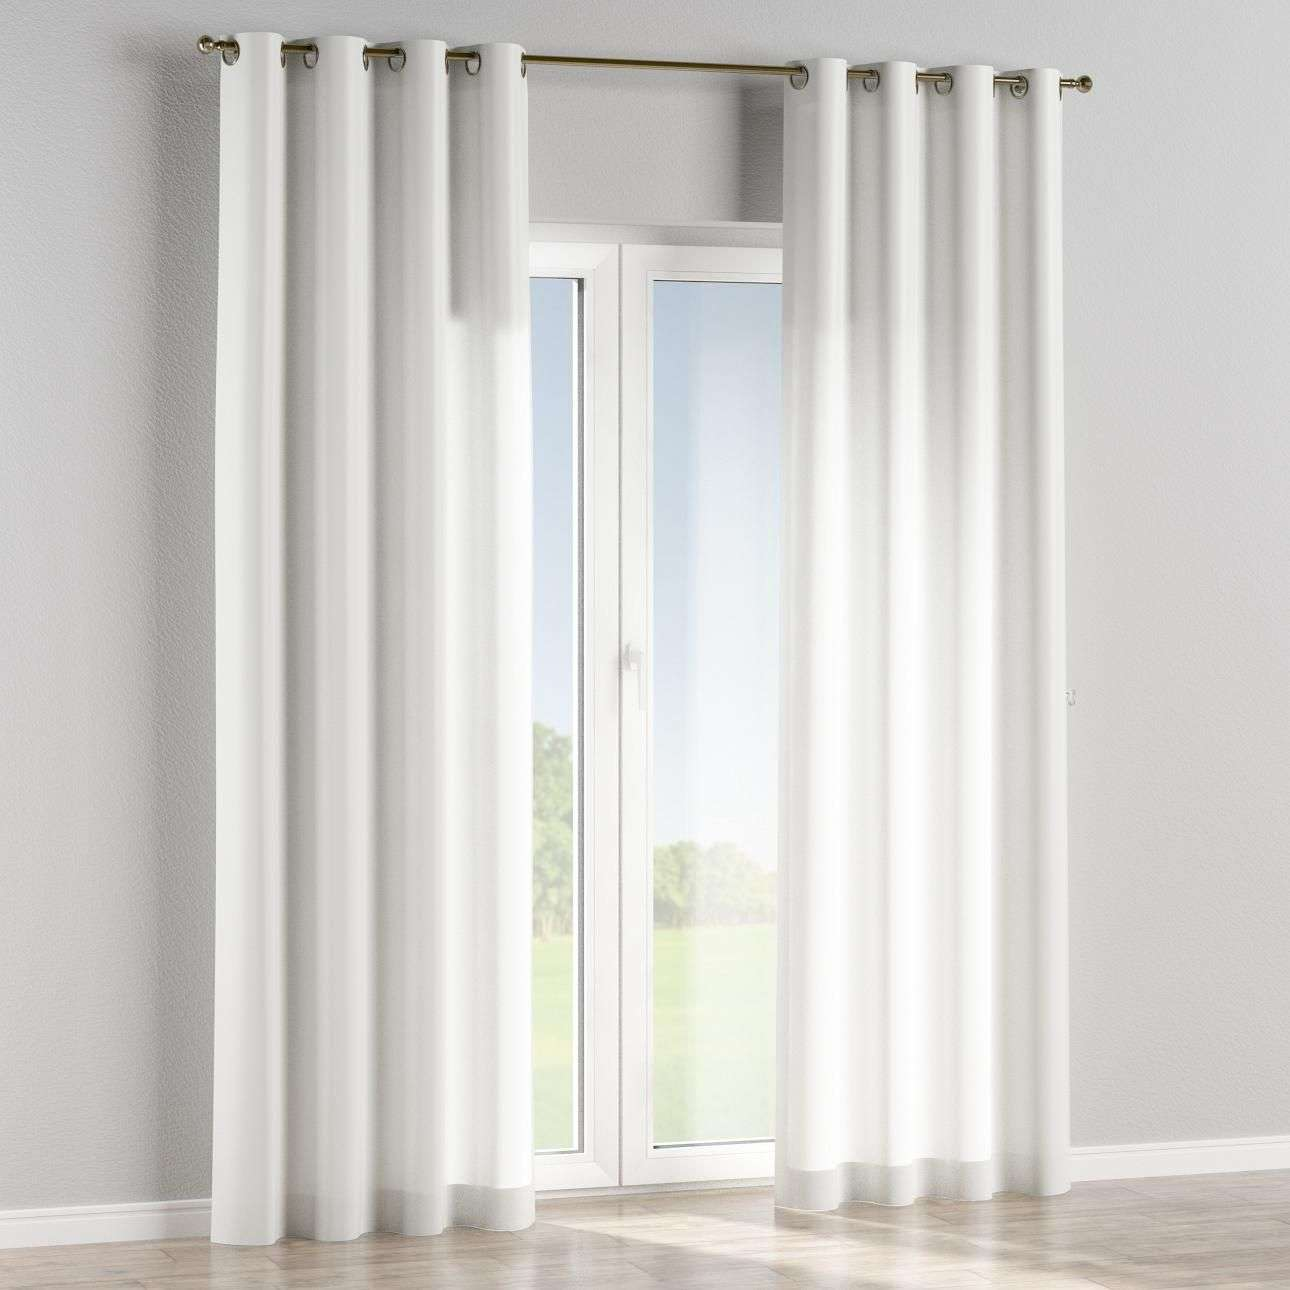 Eyelet lined curtains in collection Marina, fabric: 140-12